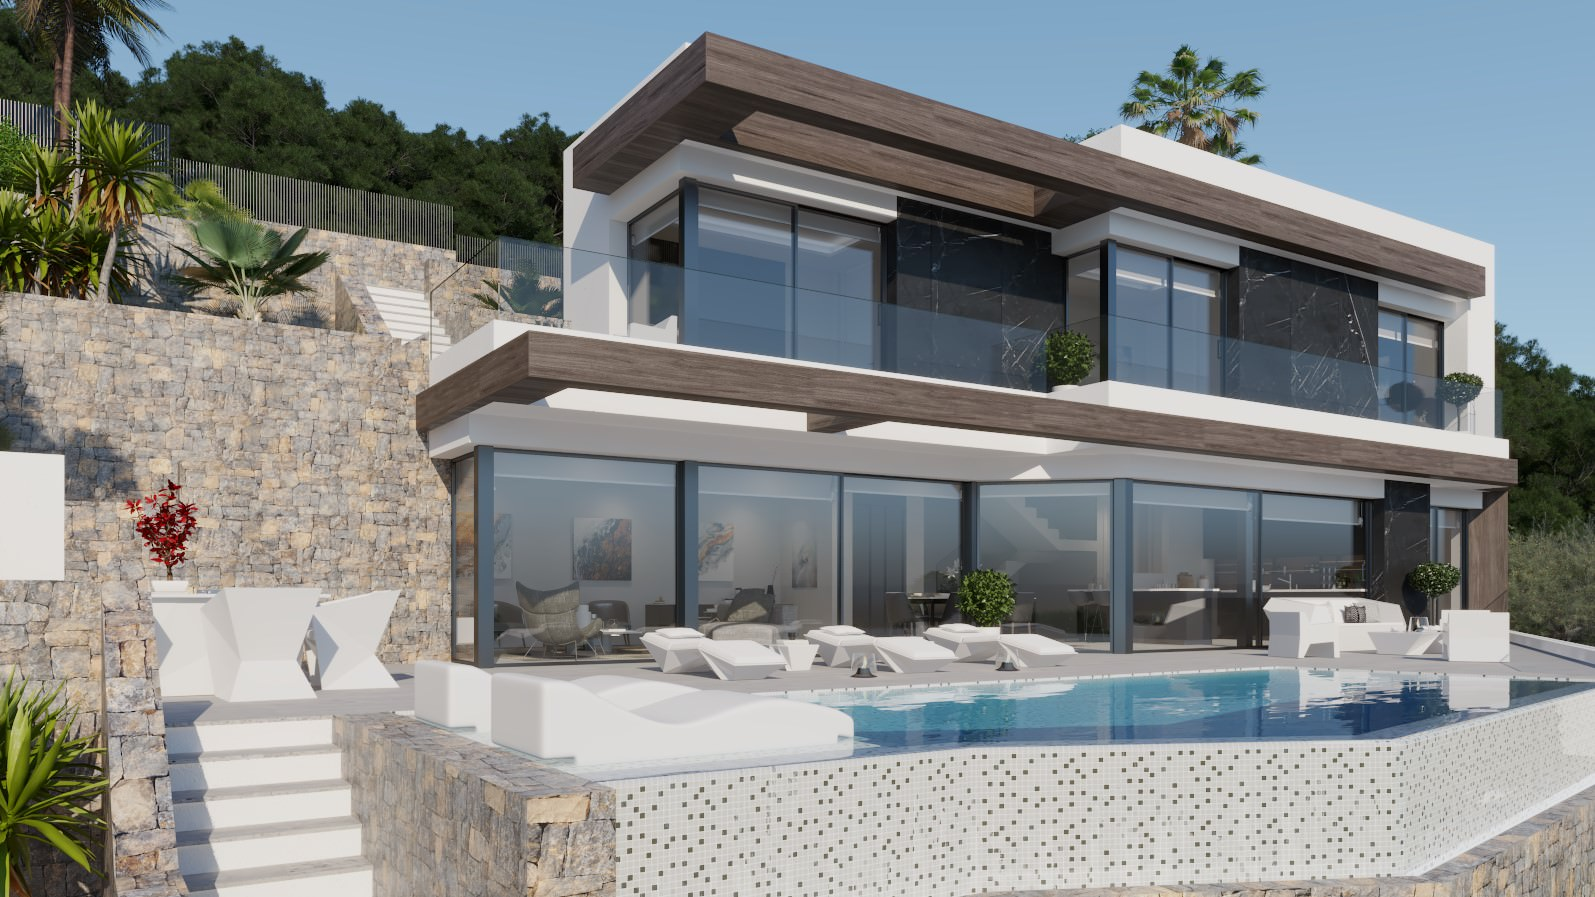 4 Bed 4 Bath Villa of luxury For Sale in Calpe ref A – 2826